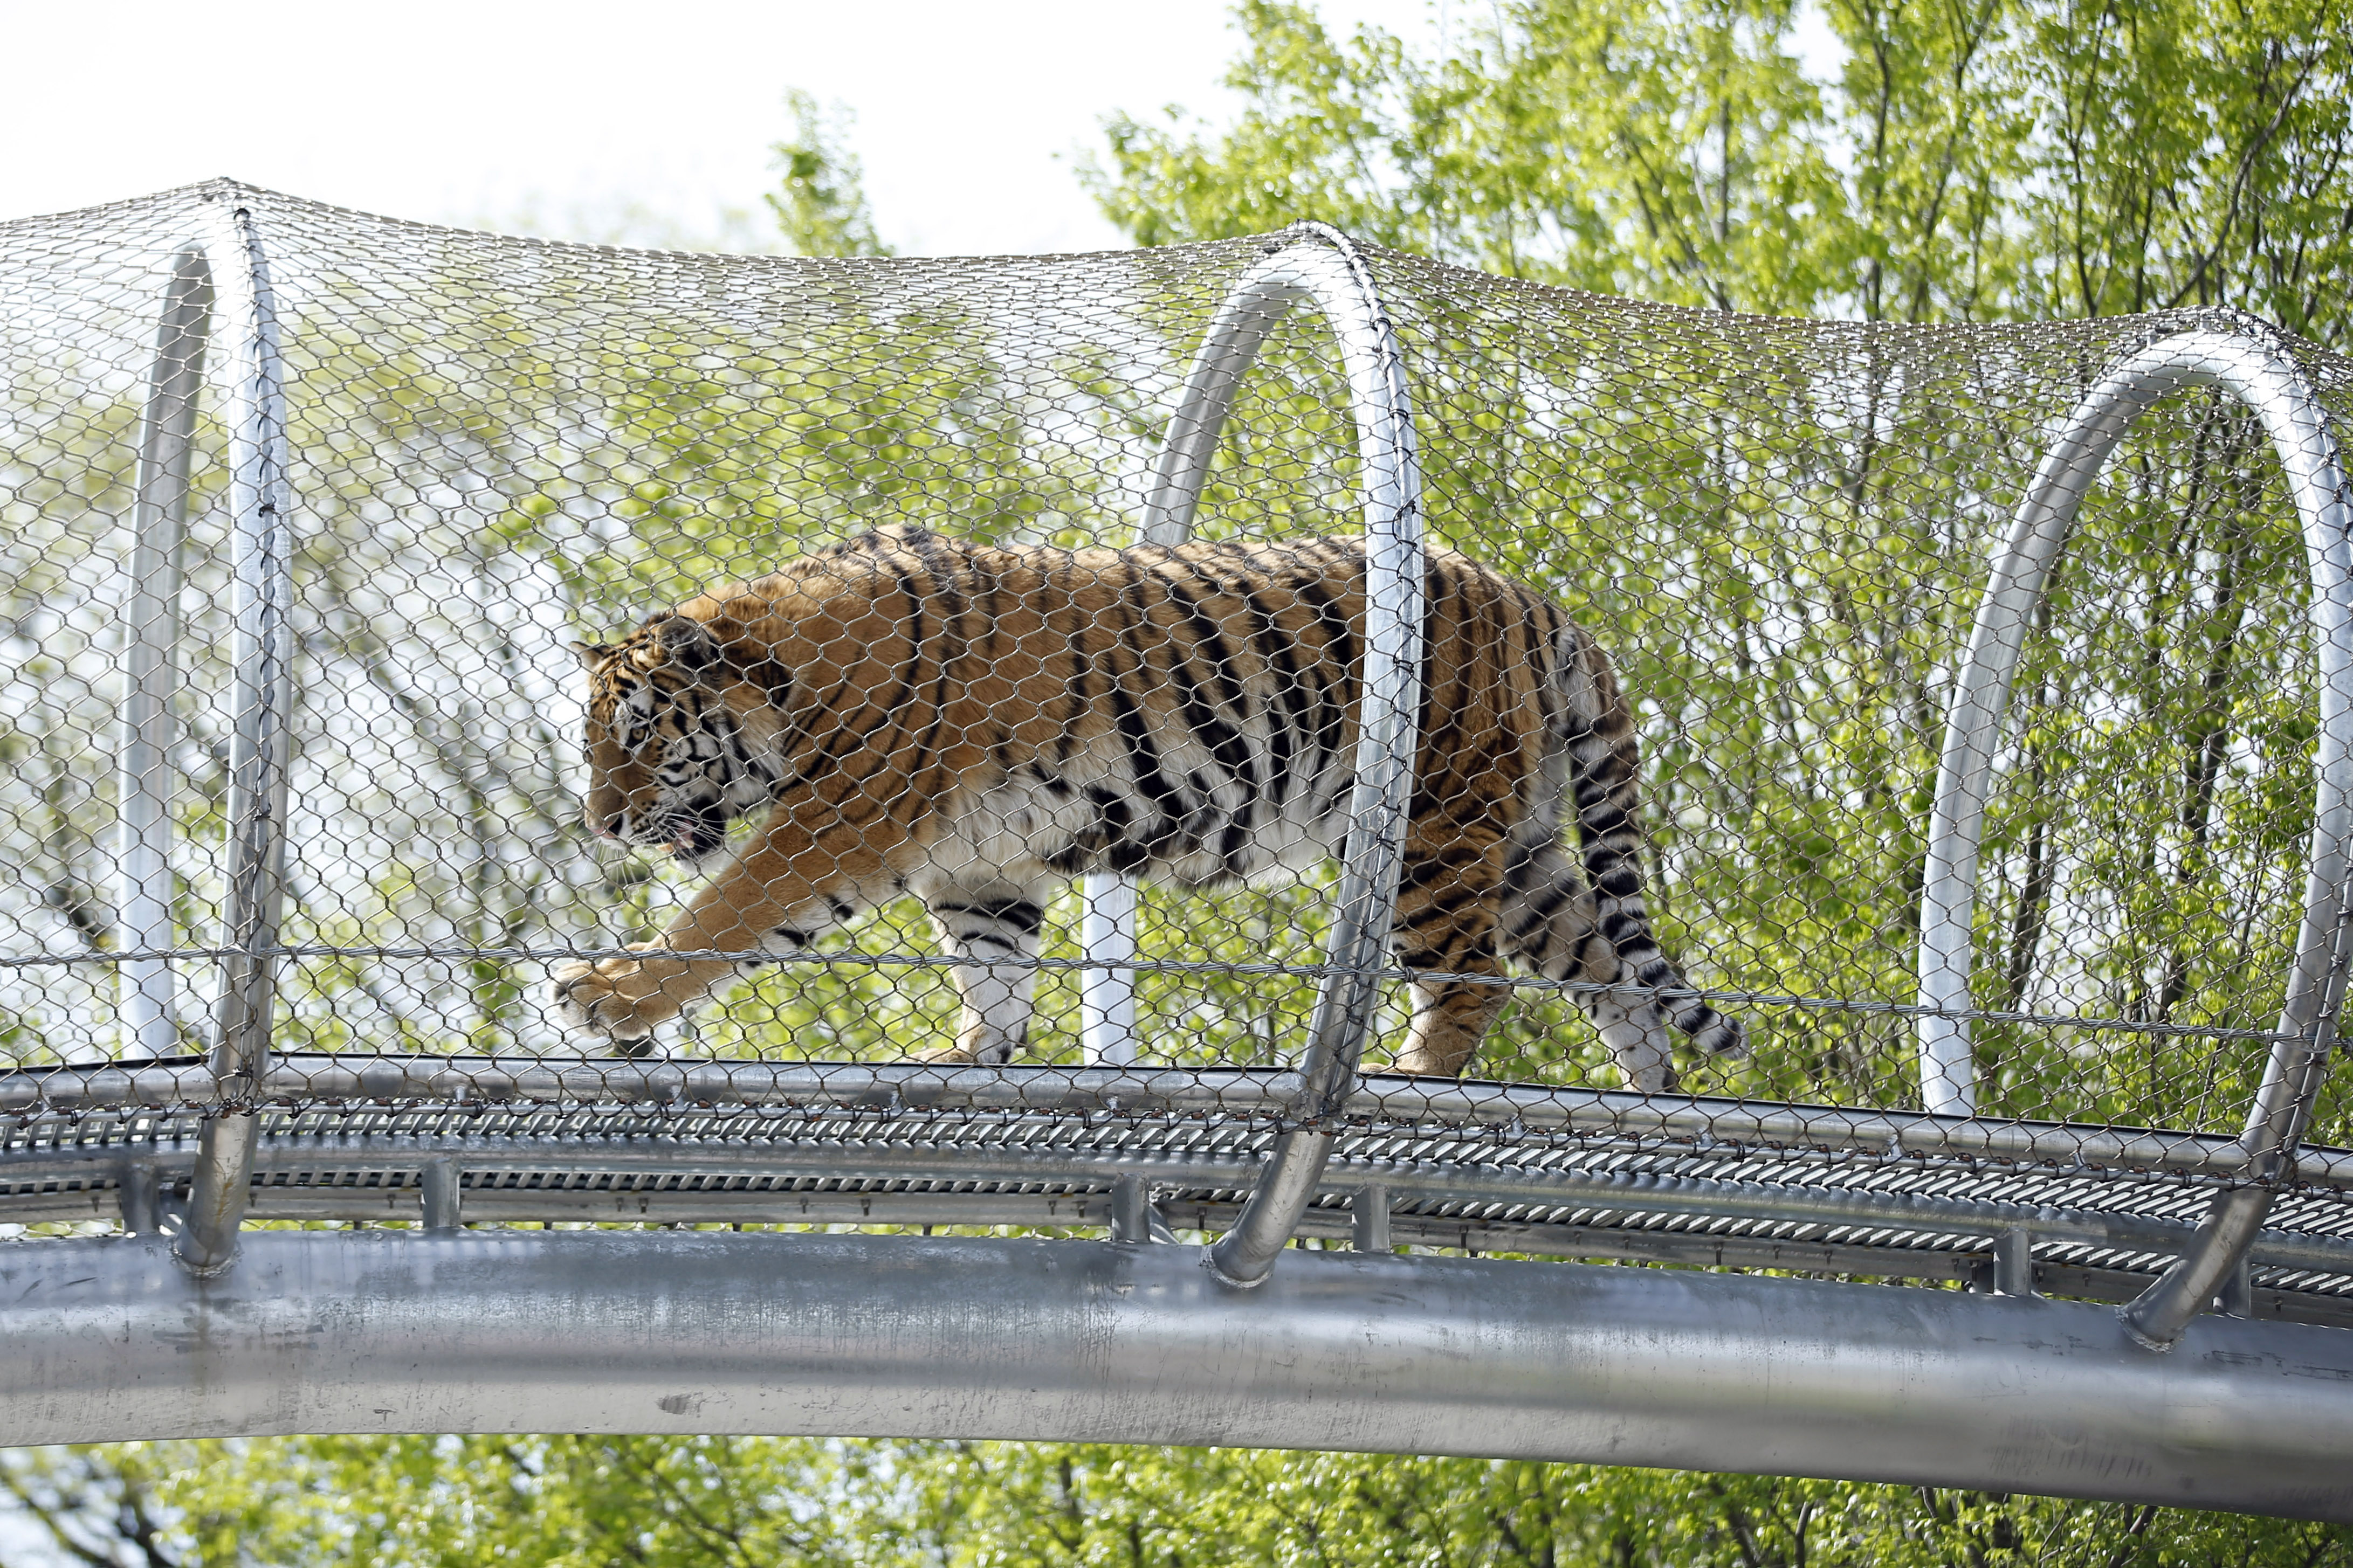 Philadelphia Zoo Lets Tigers Stretch Legs On Trail The Blade